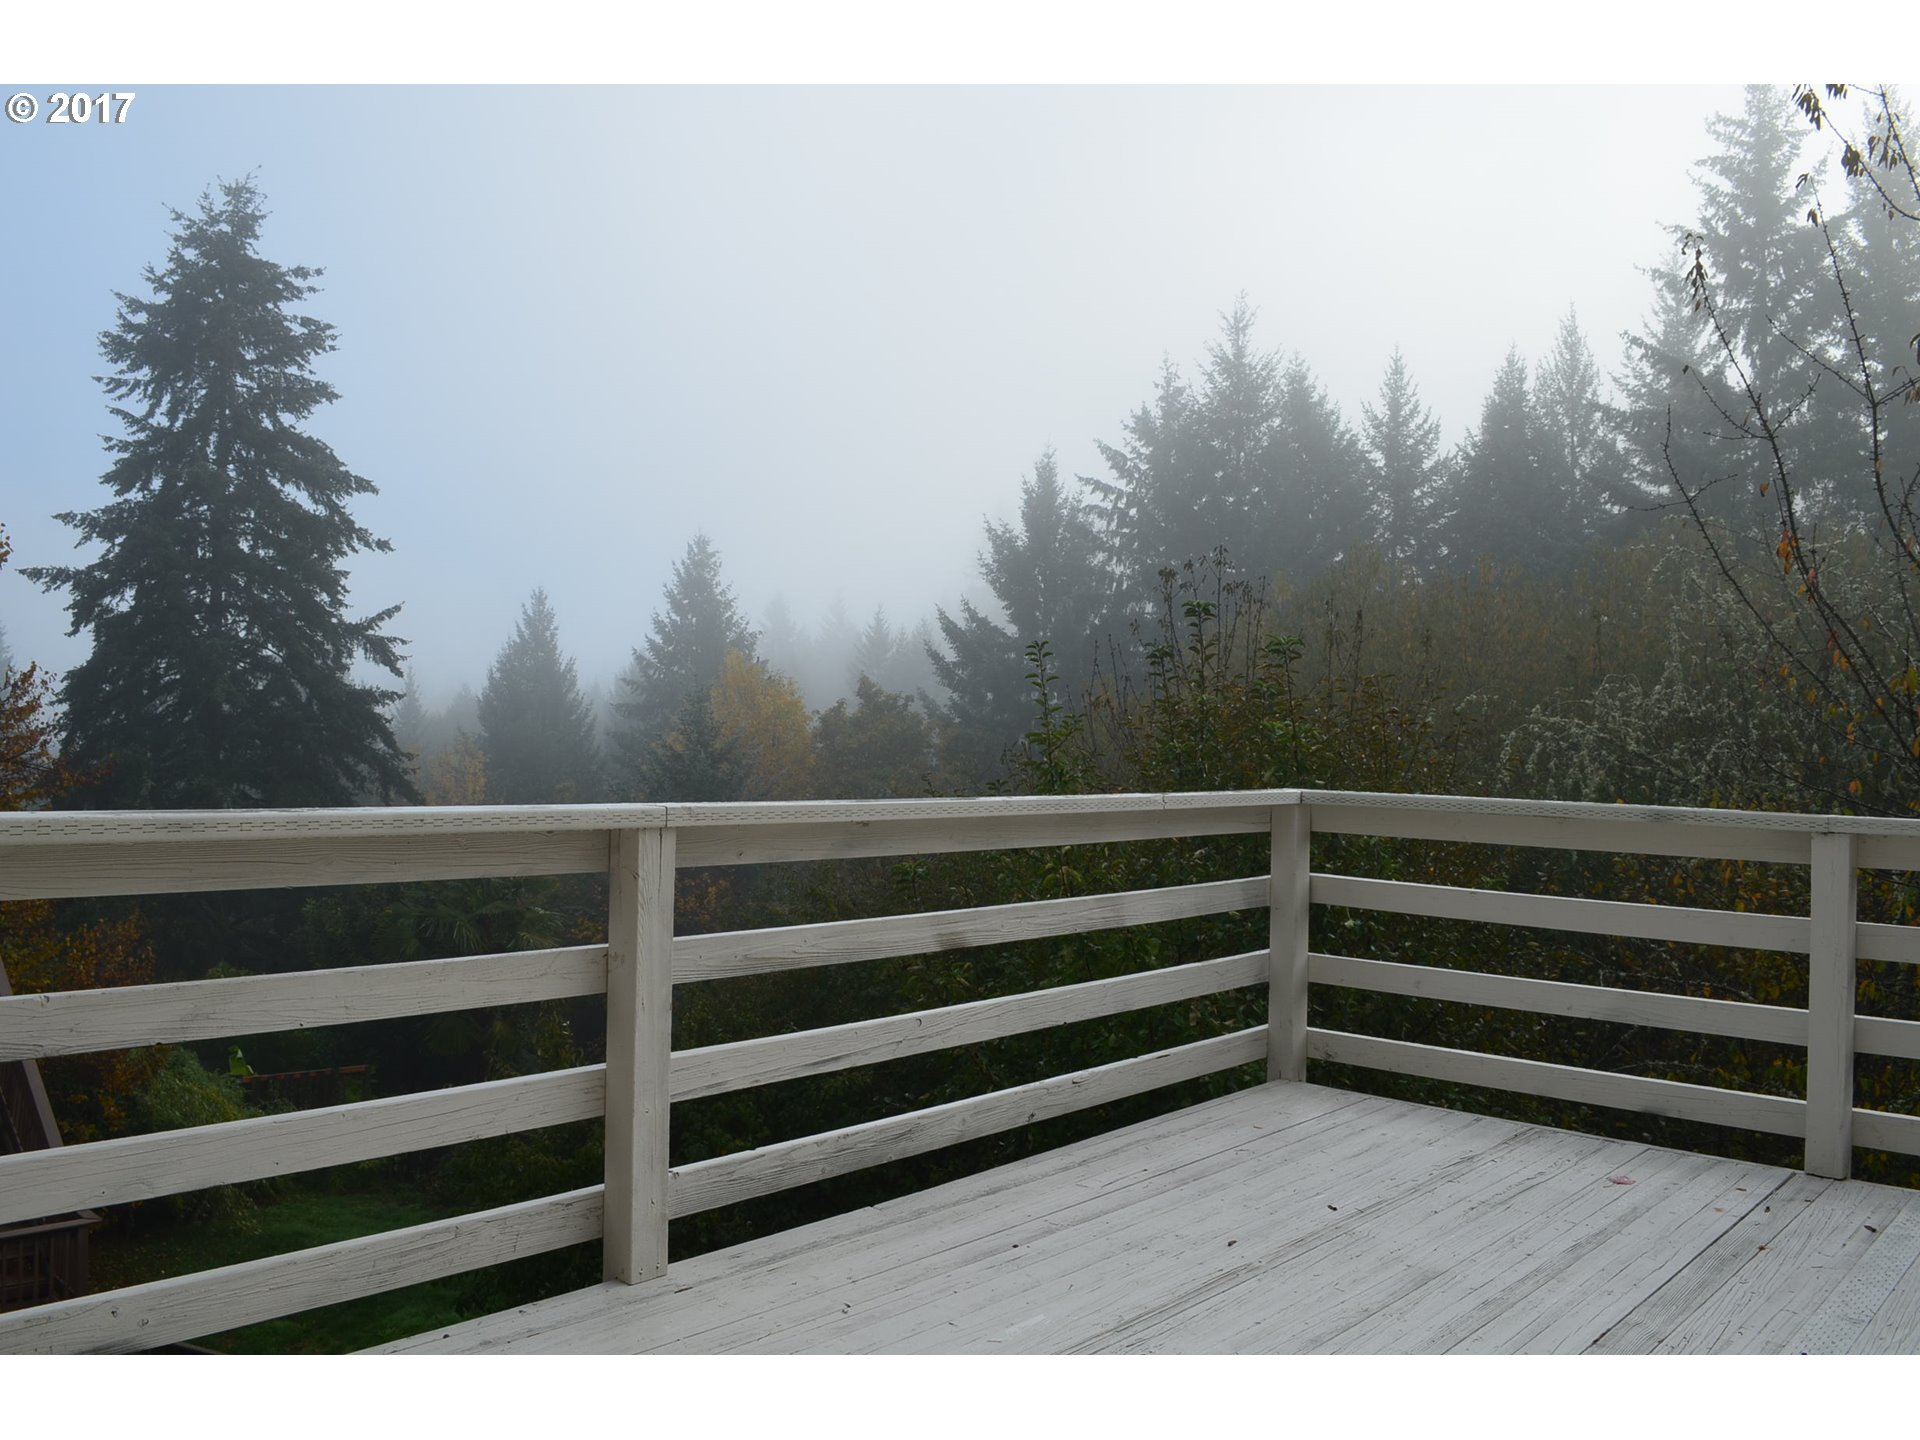 7766 SW BAYBERRY DR Aloha, OR 97007 - MLS #: 17293780